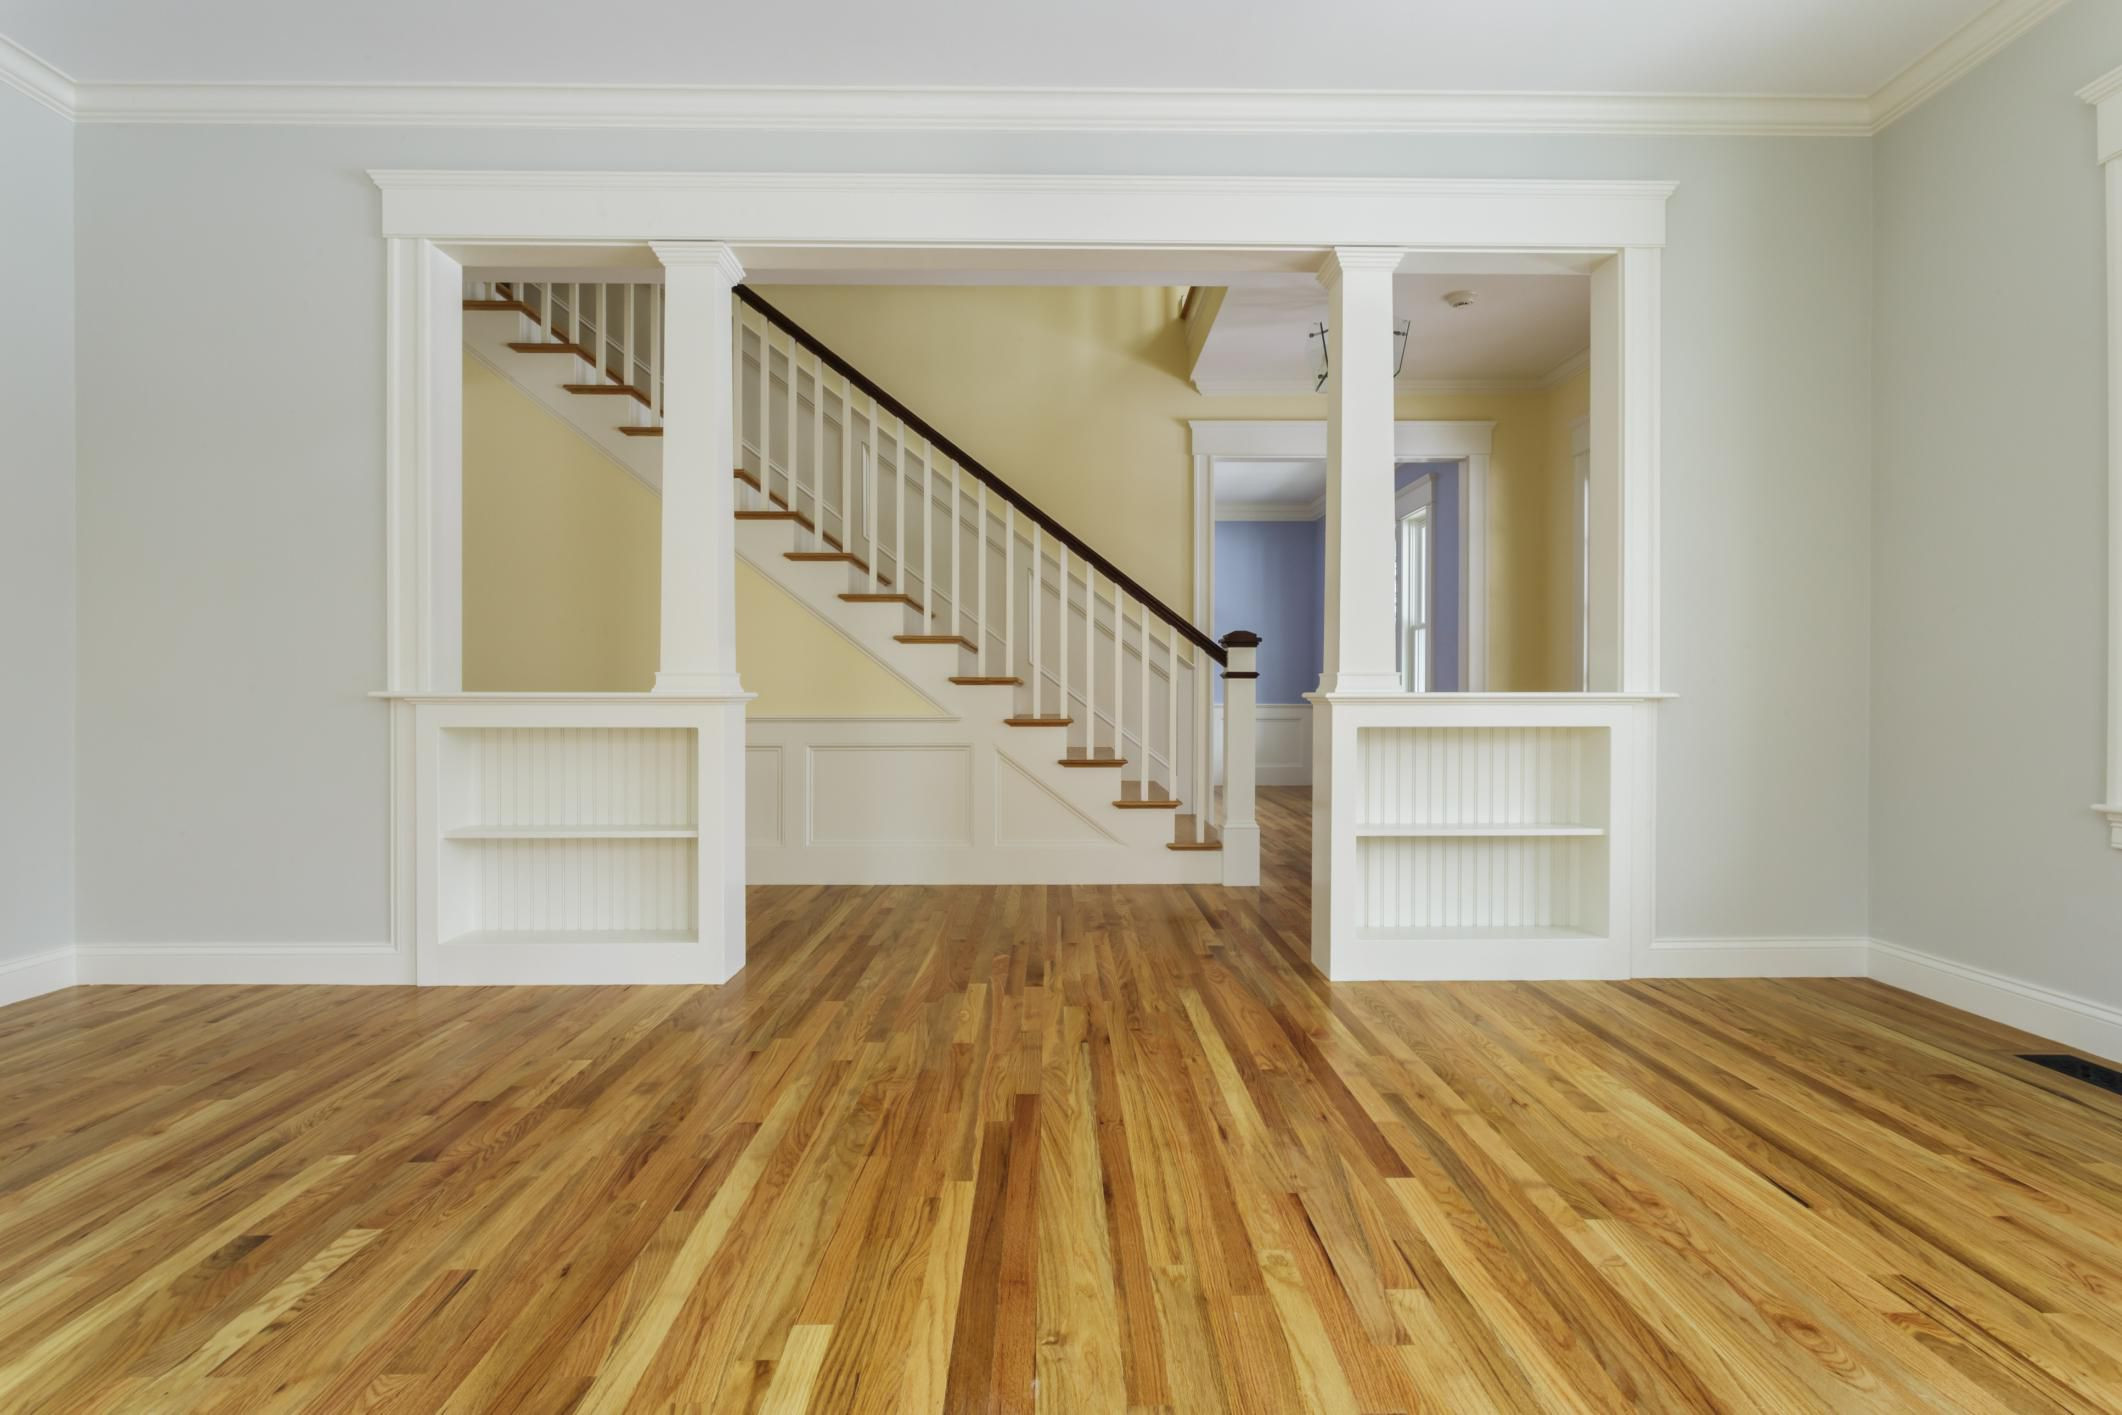 pecan hardwood flooring reviews of guide to solid hardwood floors intended for 168686571 56a49f213df78cf772834e24